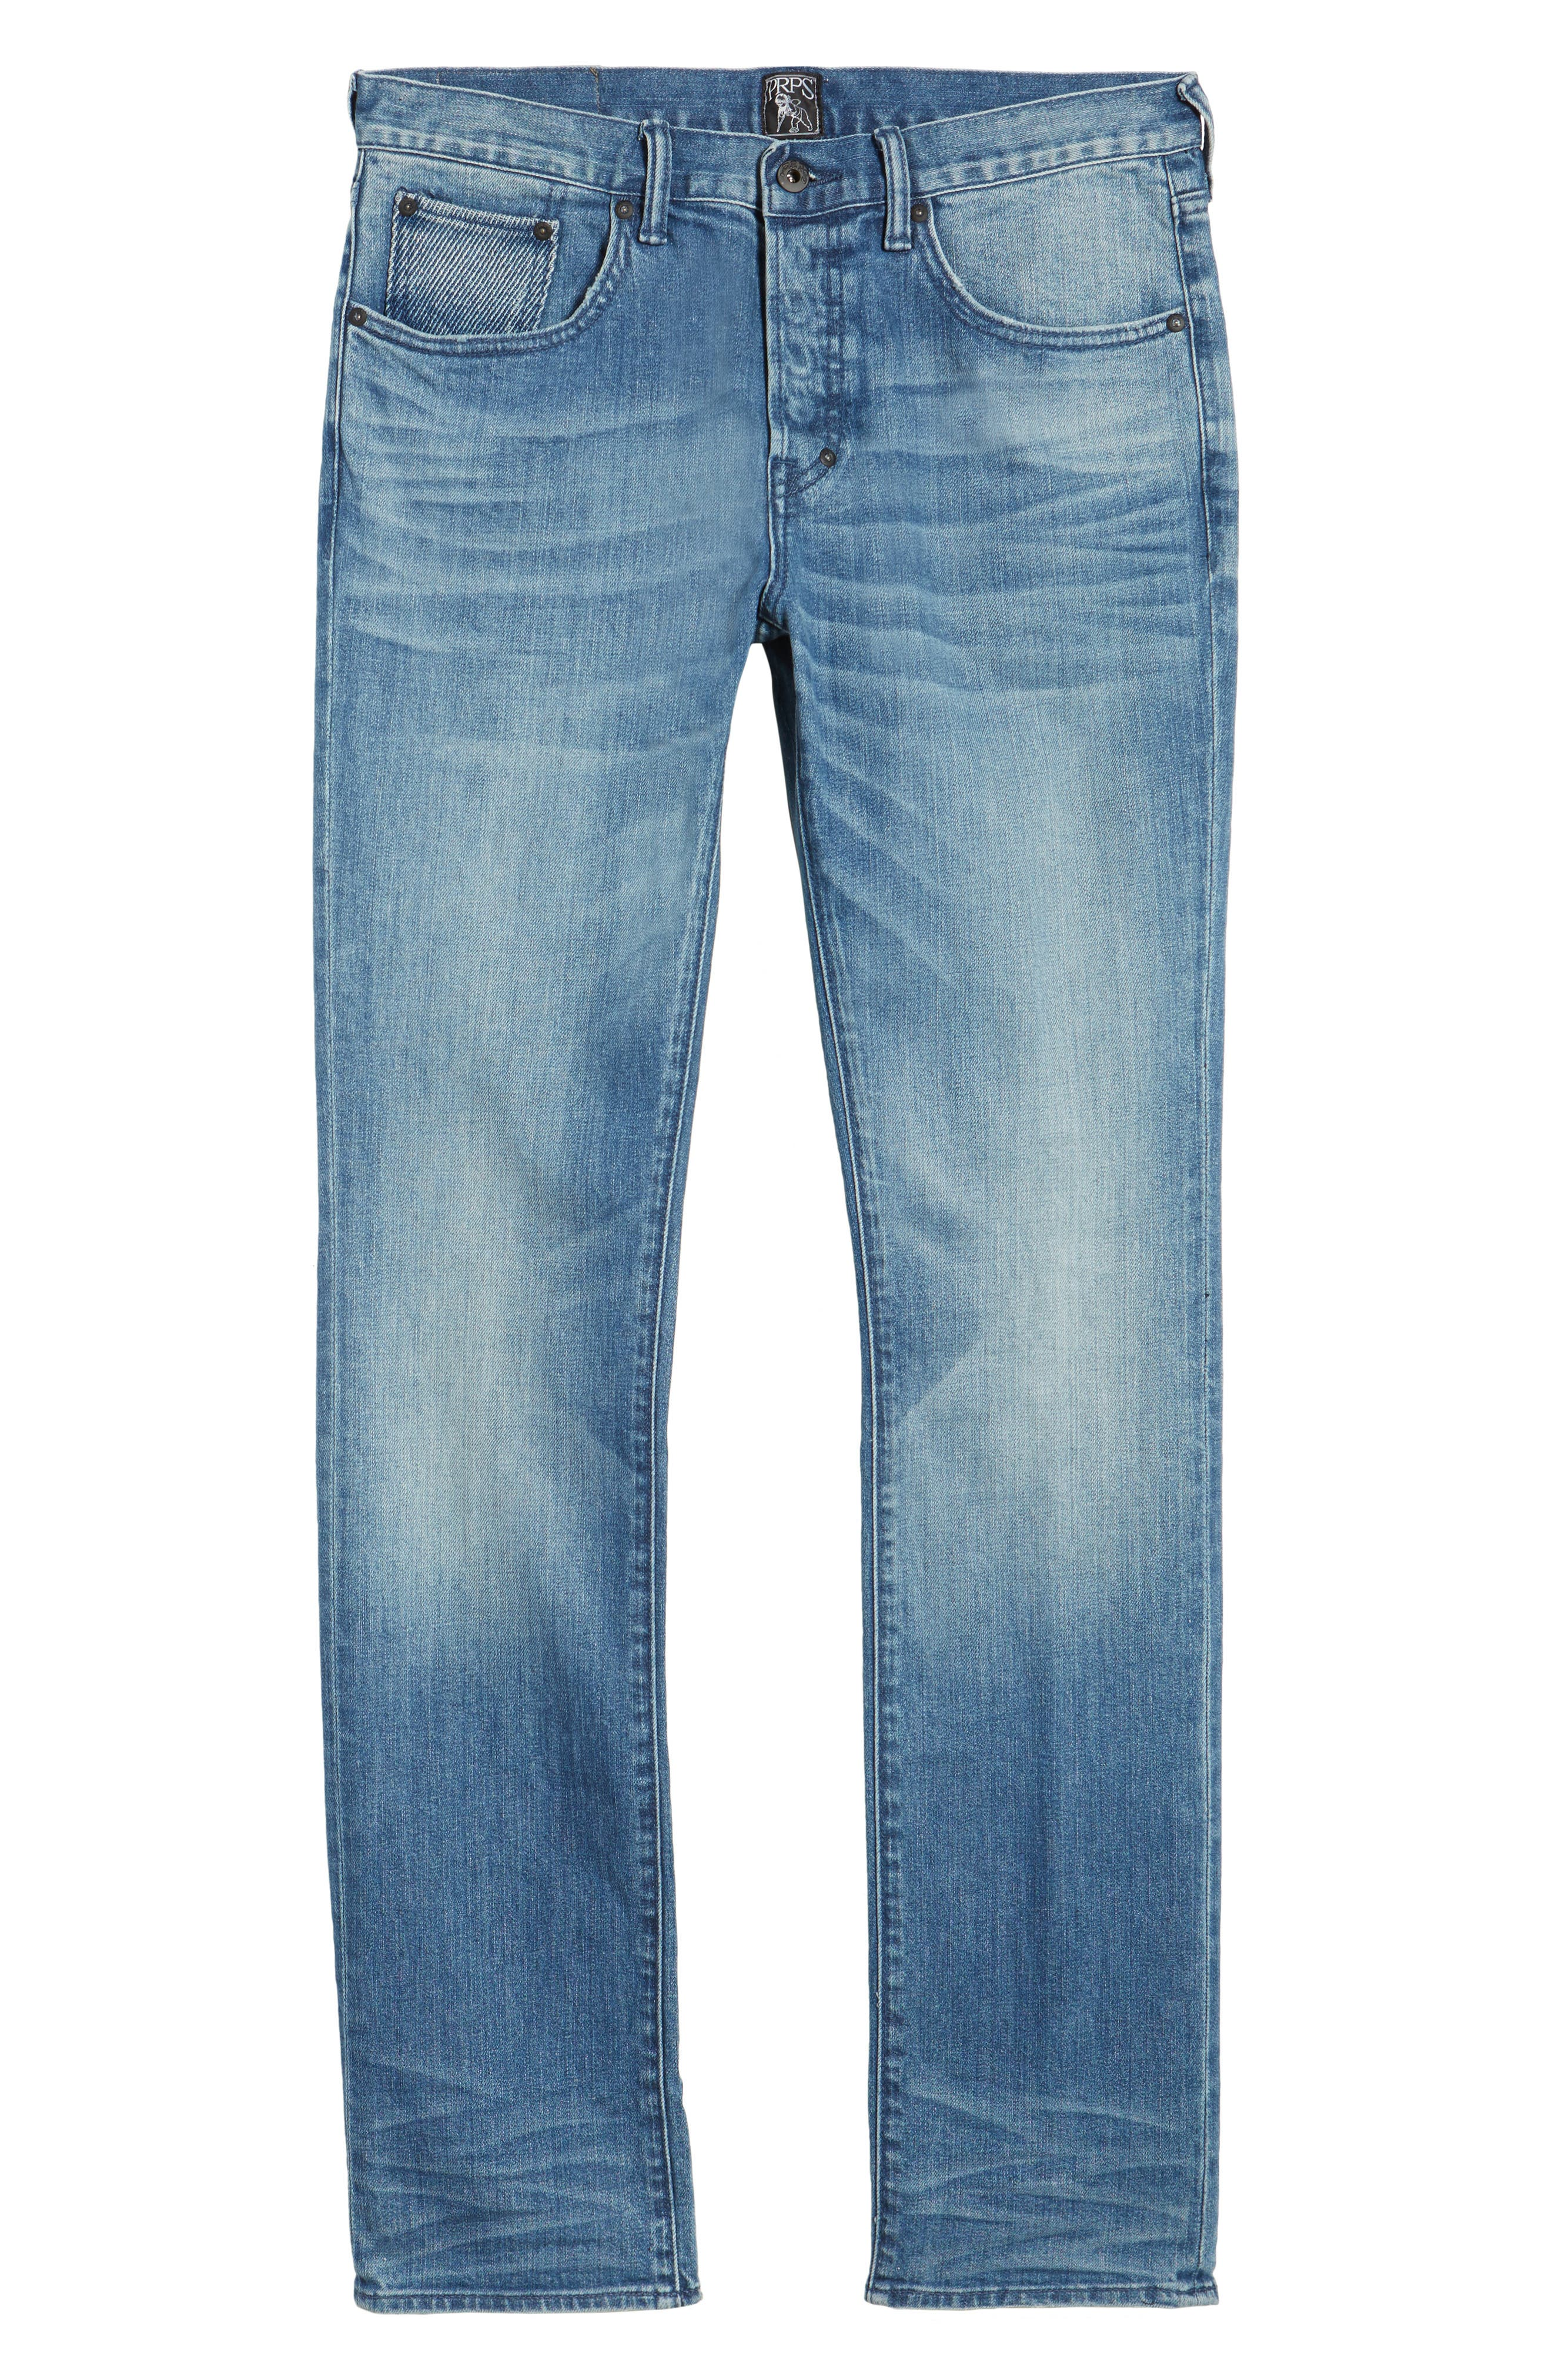 Denim Slim Straight Leg Jeans,                             Alternate thumbnail 6, color,